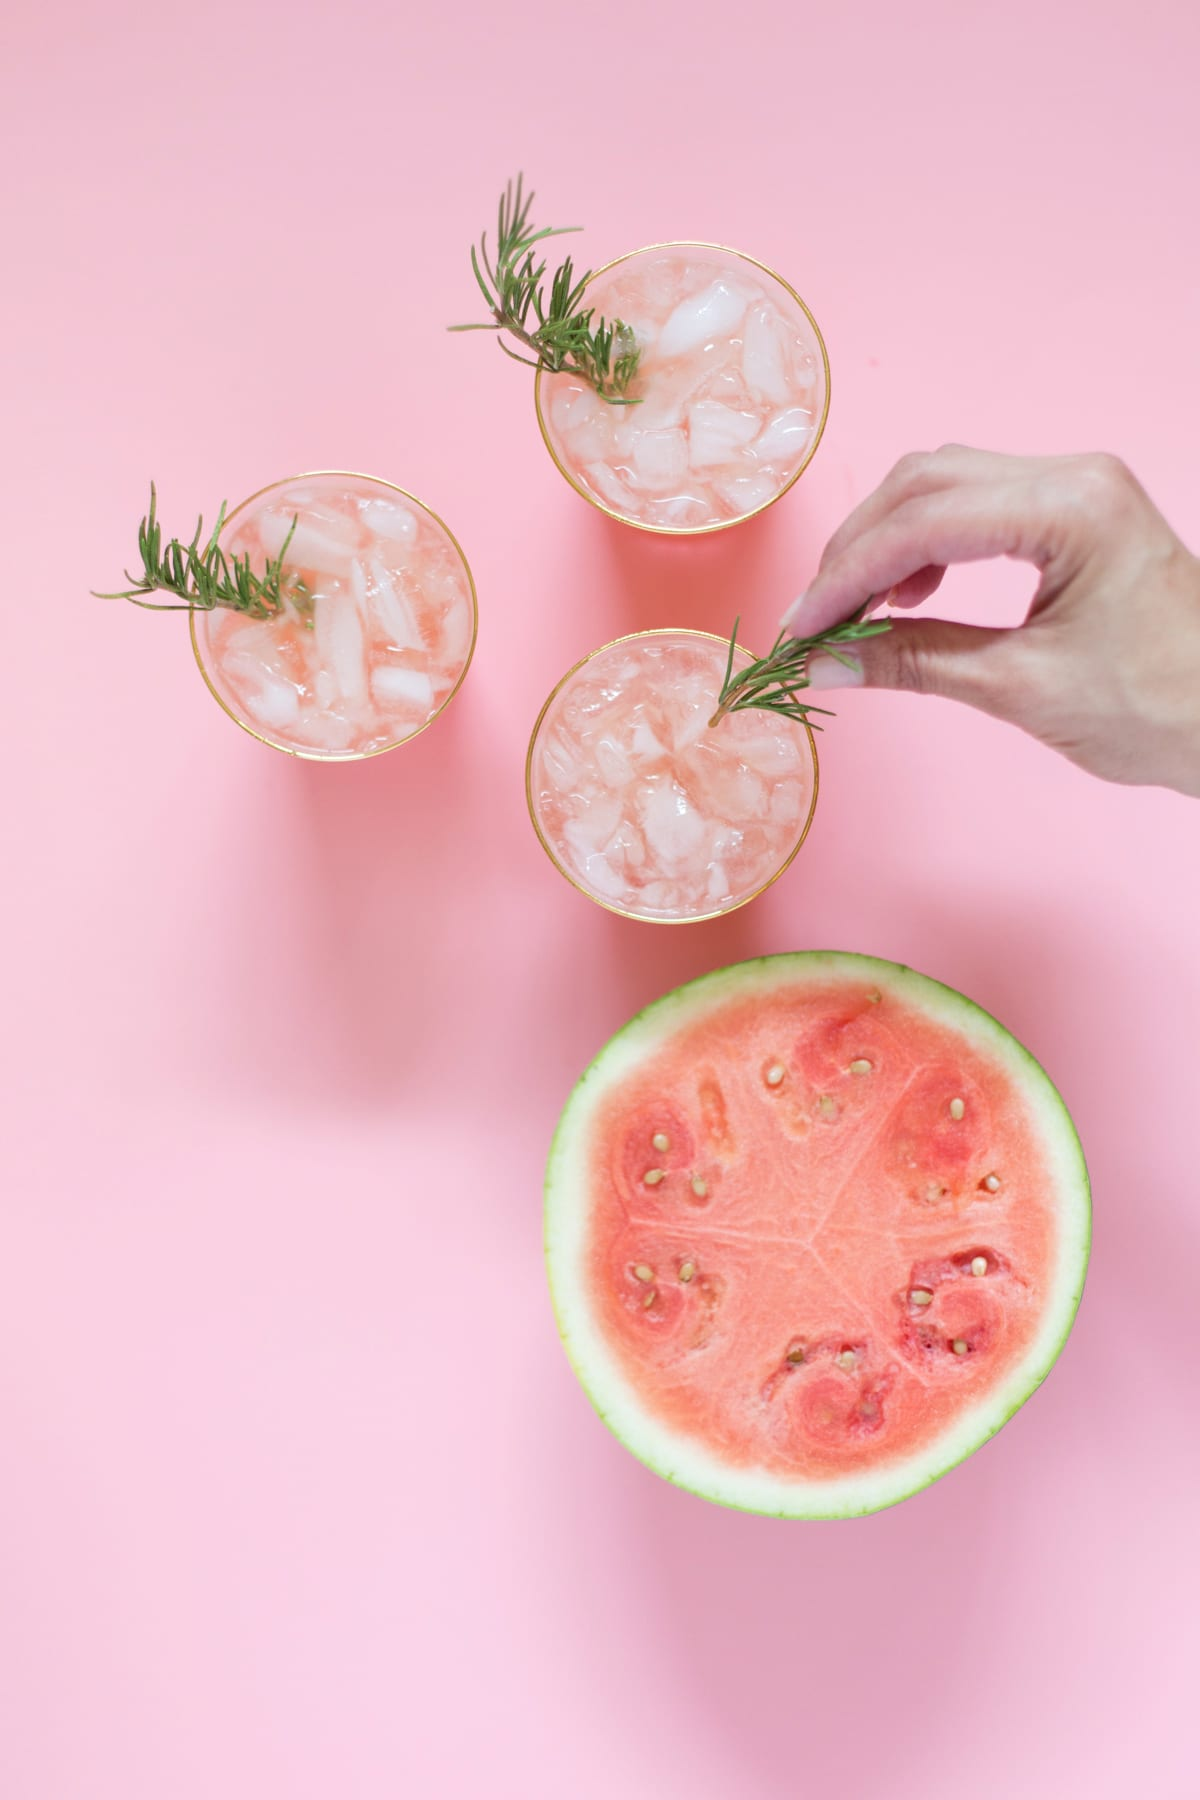 How to Make Watermelon Checkers photo